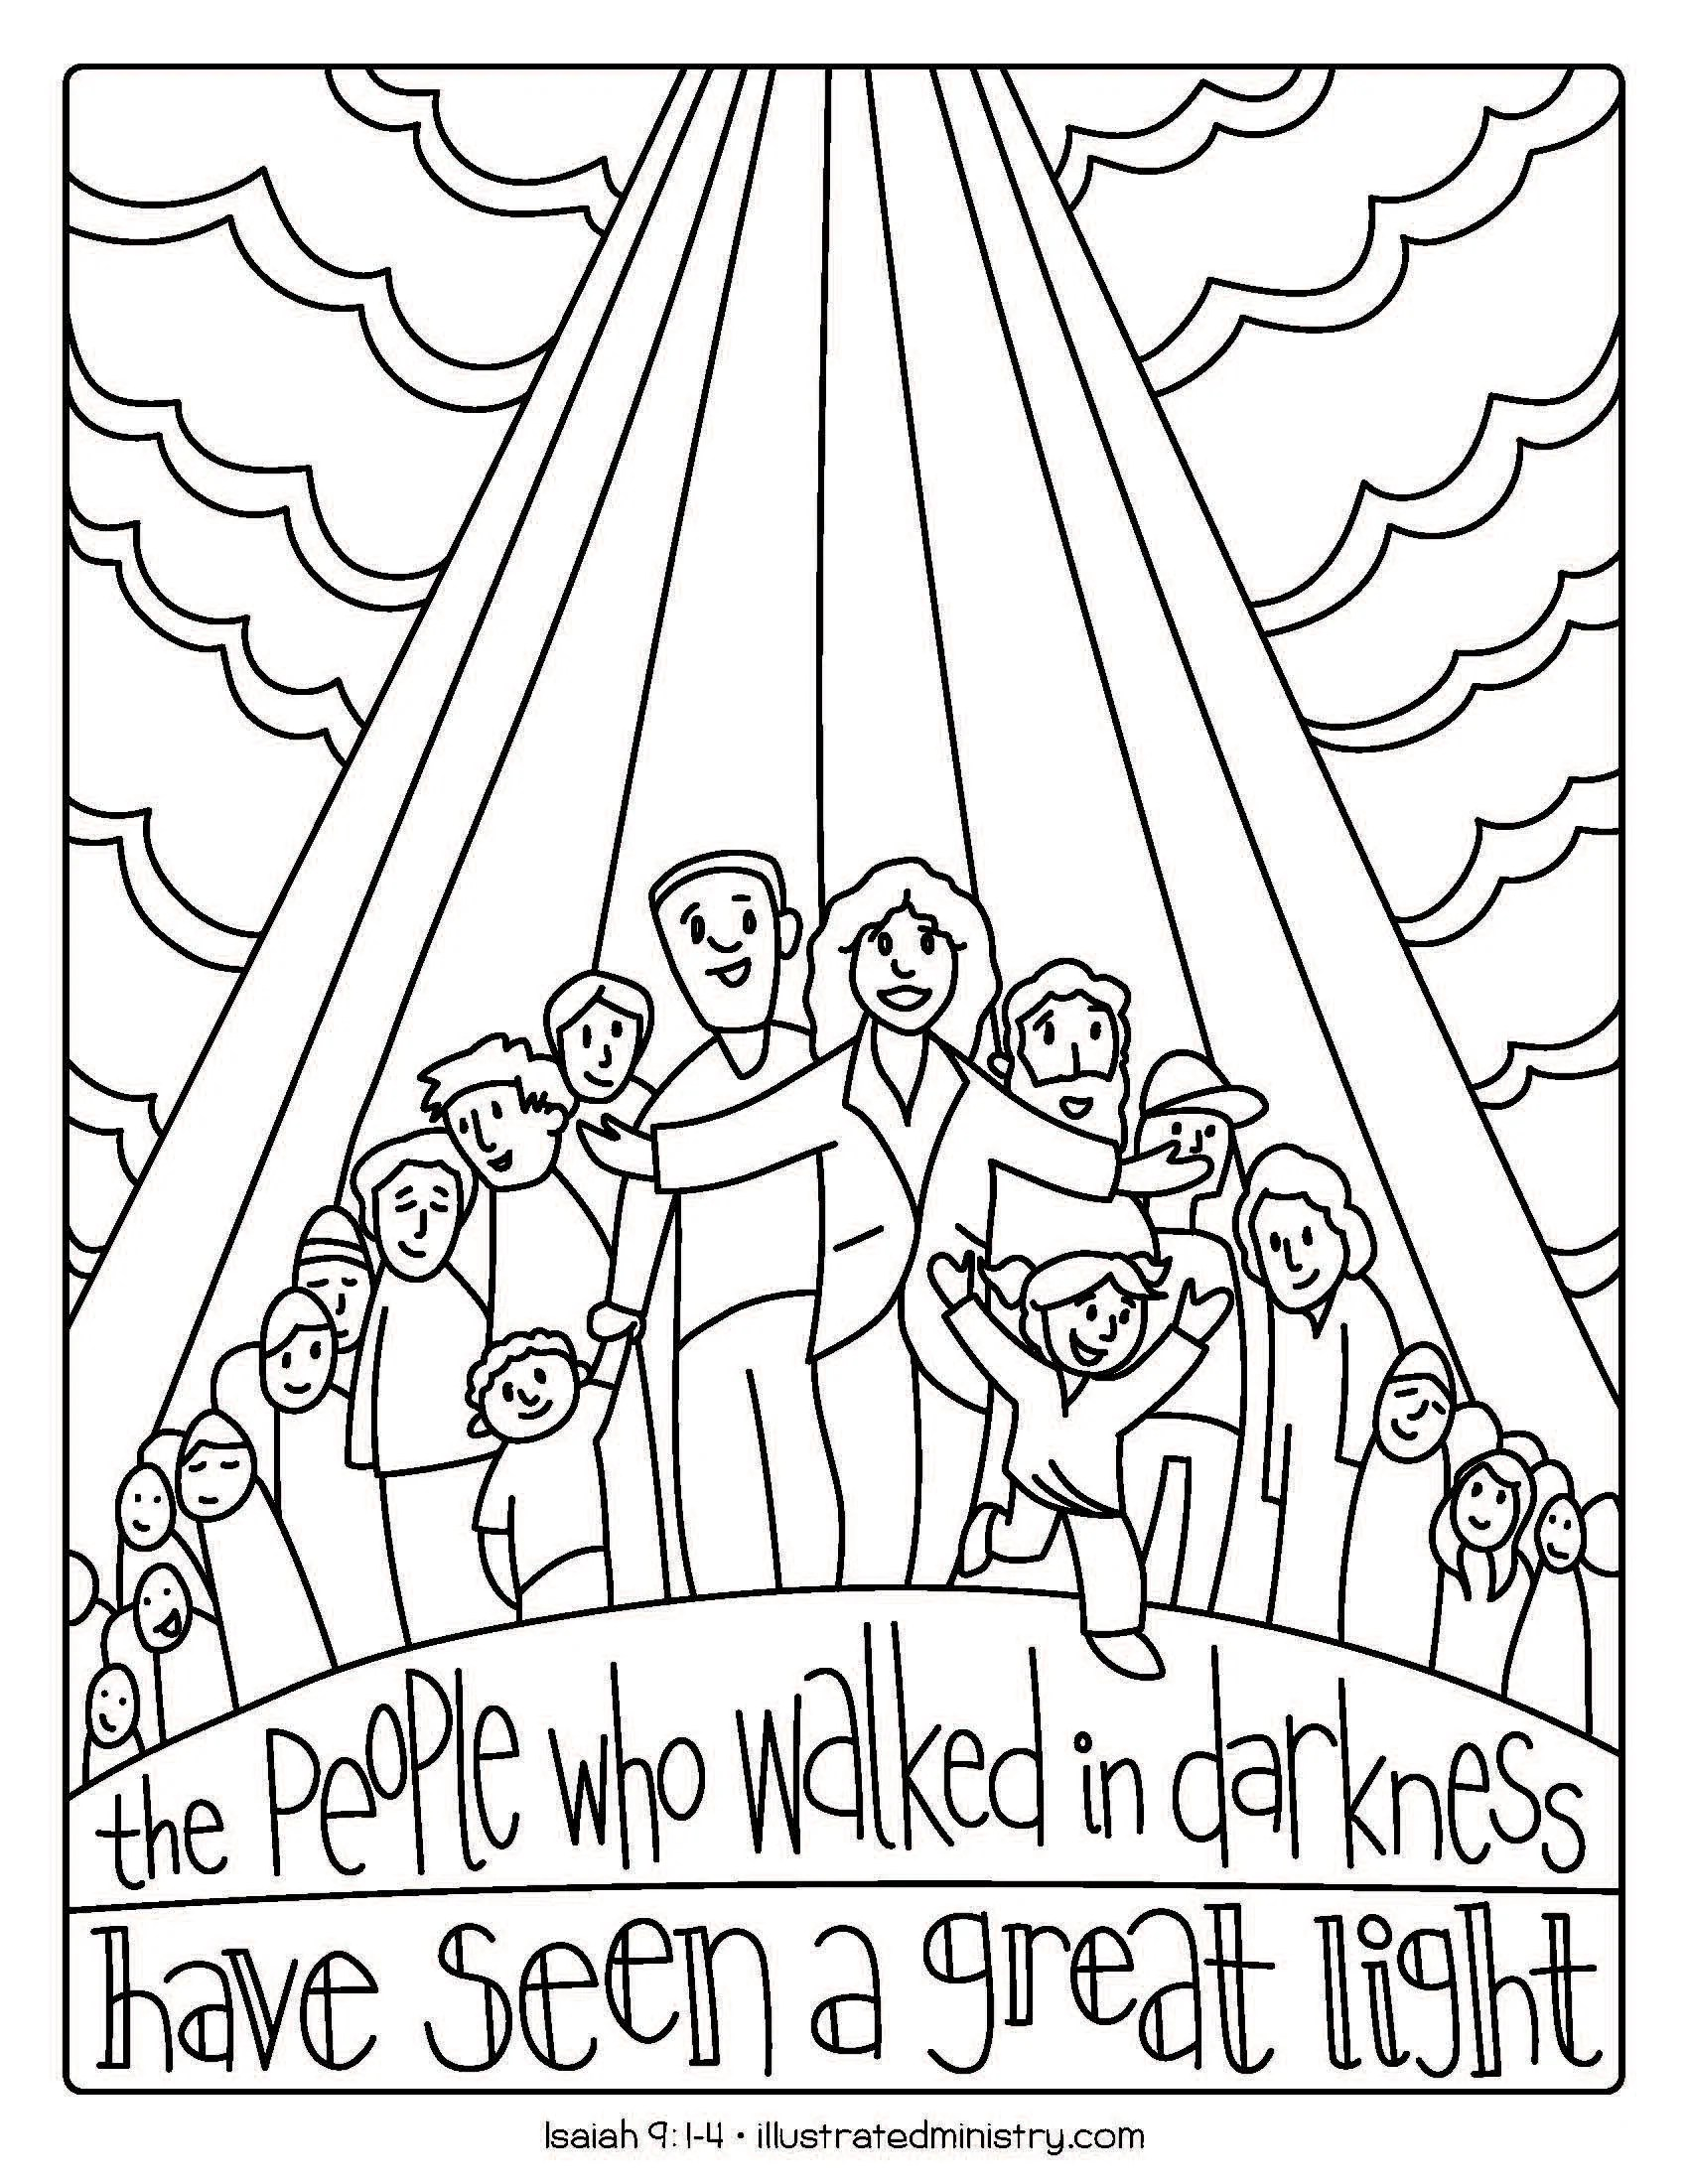 Bible Story Coloring Pages Winter 2019 2020 Illustrated Ministry